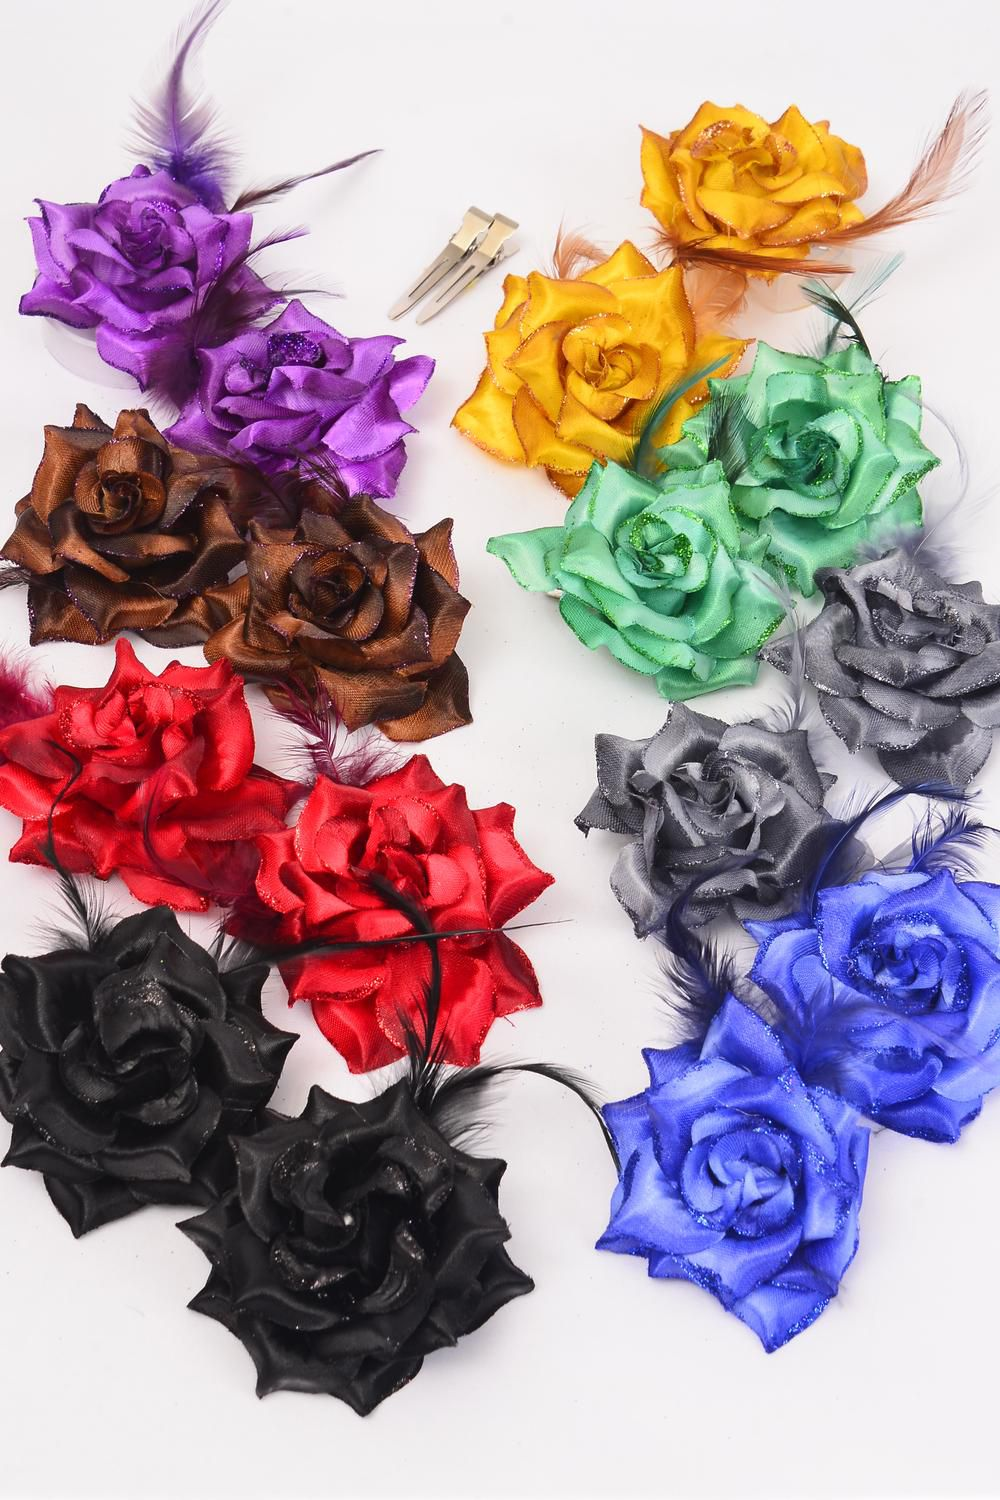 "Flowers 24 pcs Glitter Rose & Feathers Dark Multi Alligator Clip /DZ **Dark Multi** Alligator Clip,Size-2.75"" Wide,2 Brown,2 Purple,2 Red,2 Gold,1 Blue,1 Black,1 Gray,1 Green,8 Color Asst"